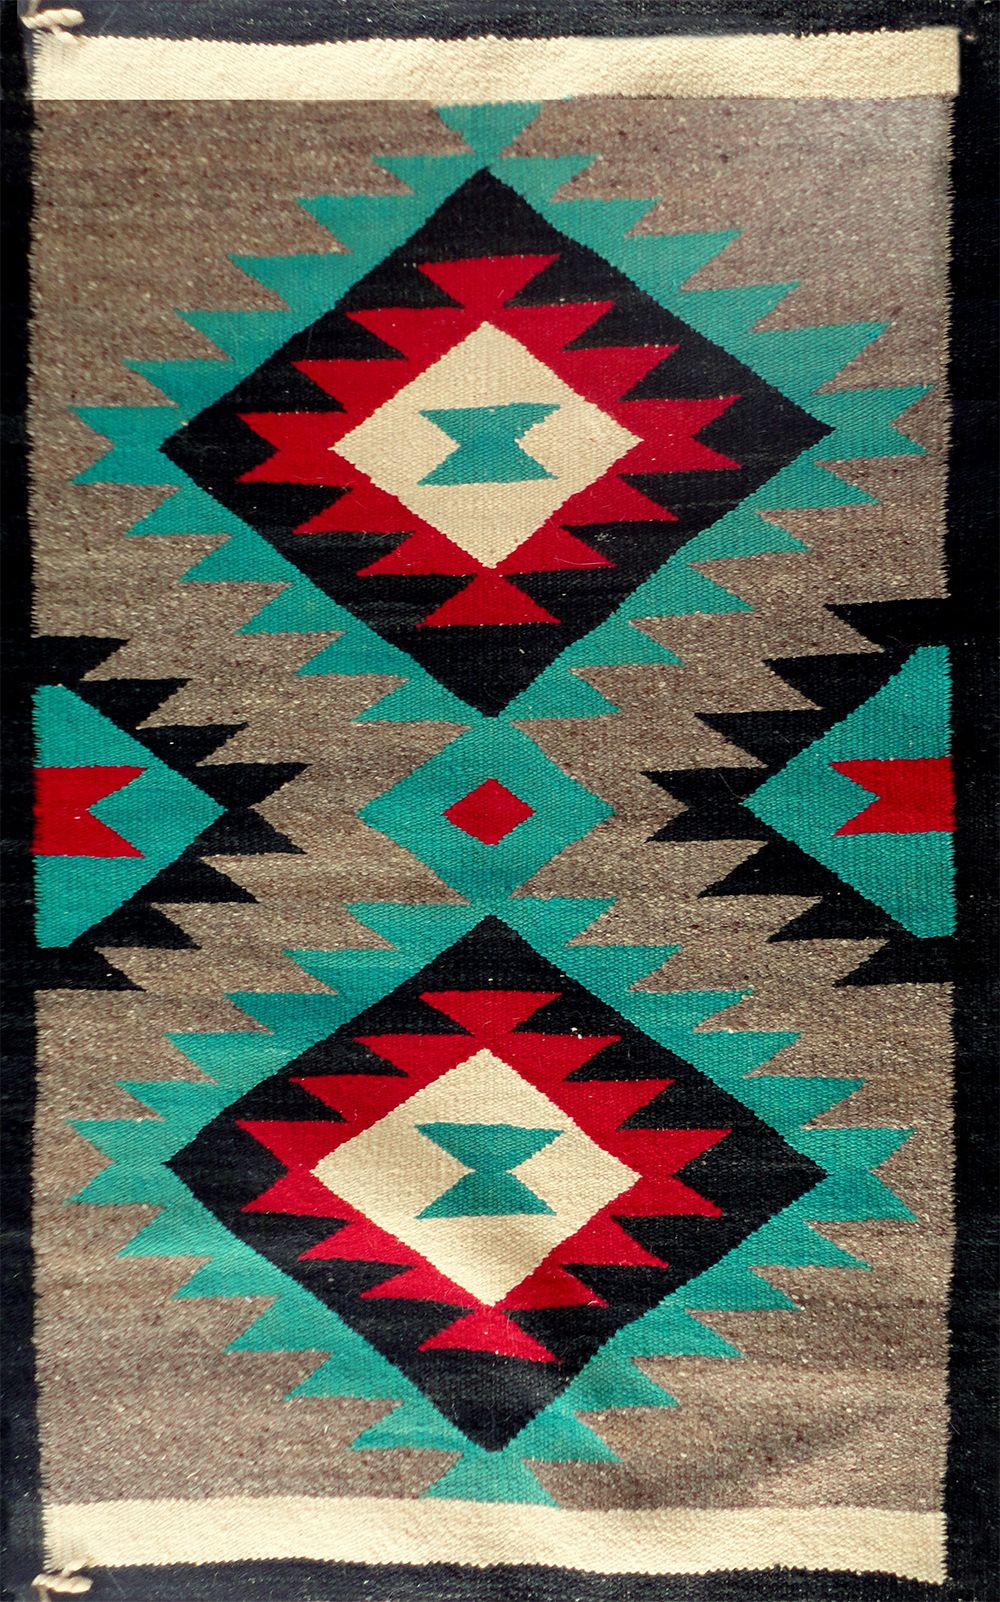 Navajo rug | Home Design/Decorating | Pinterest | Navajo, Native ...